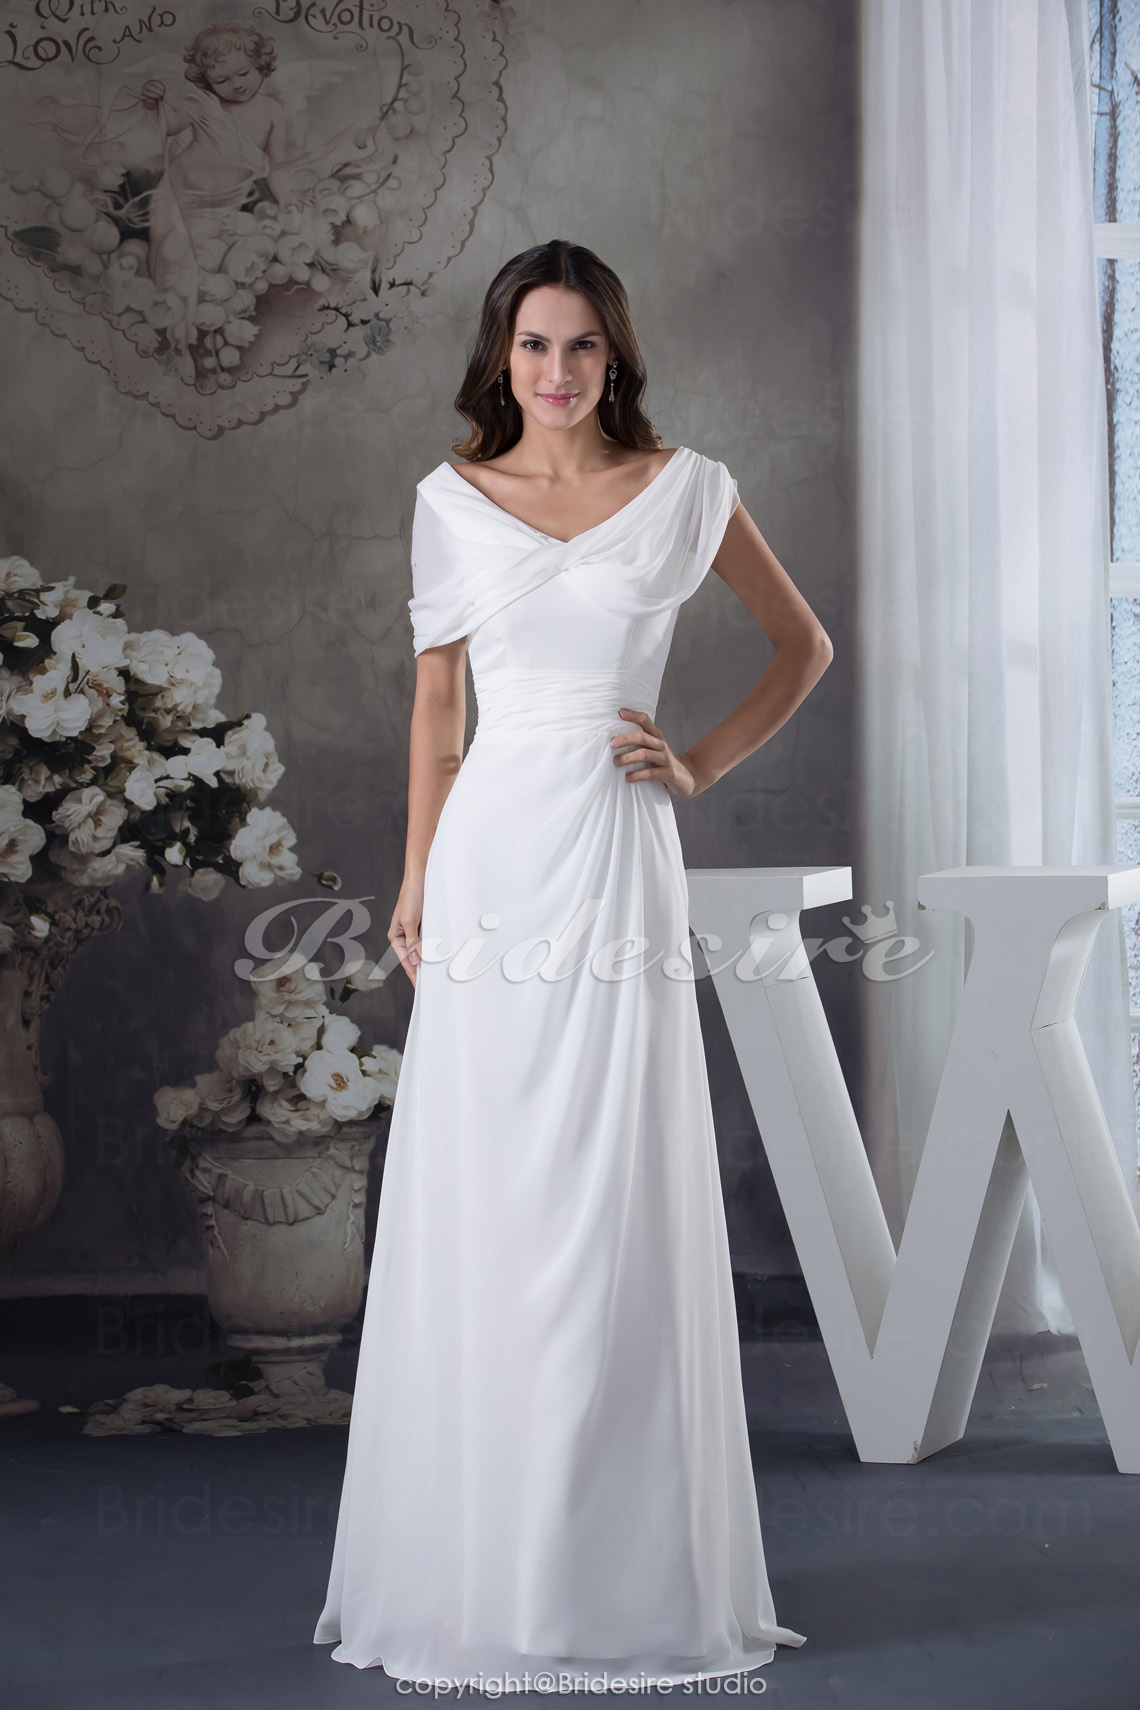 Sheath/Column V-neck Floor-length Short Sleeve Chiffon Wedding Dress